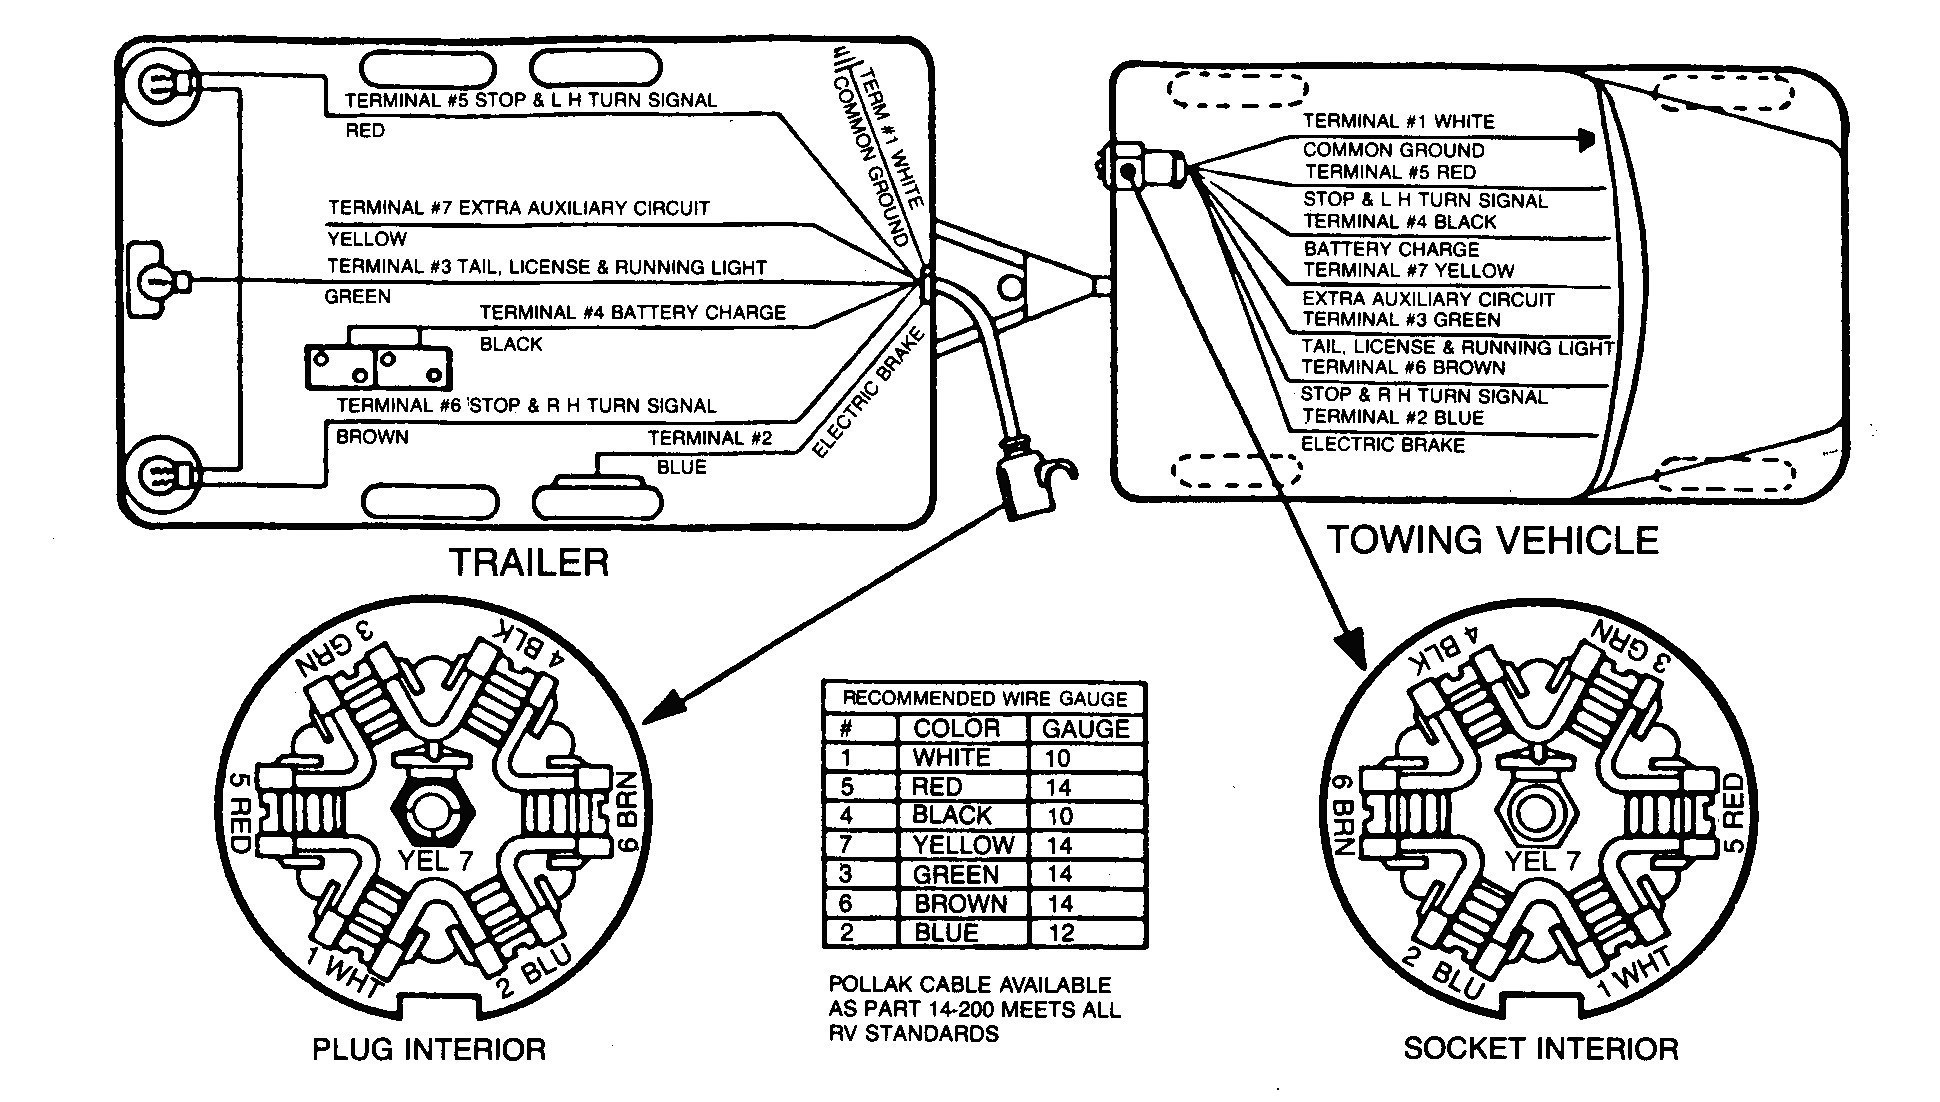 6 Pin To 7 Pin Trailer Adapter Wiring Diagram